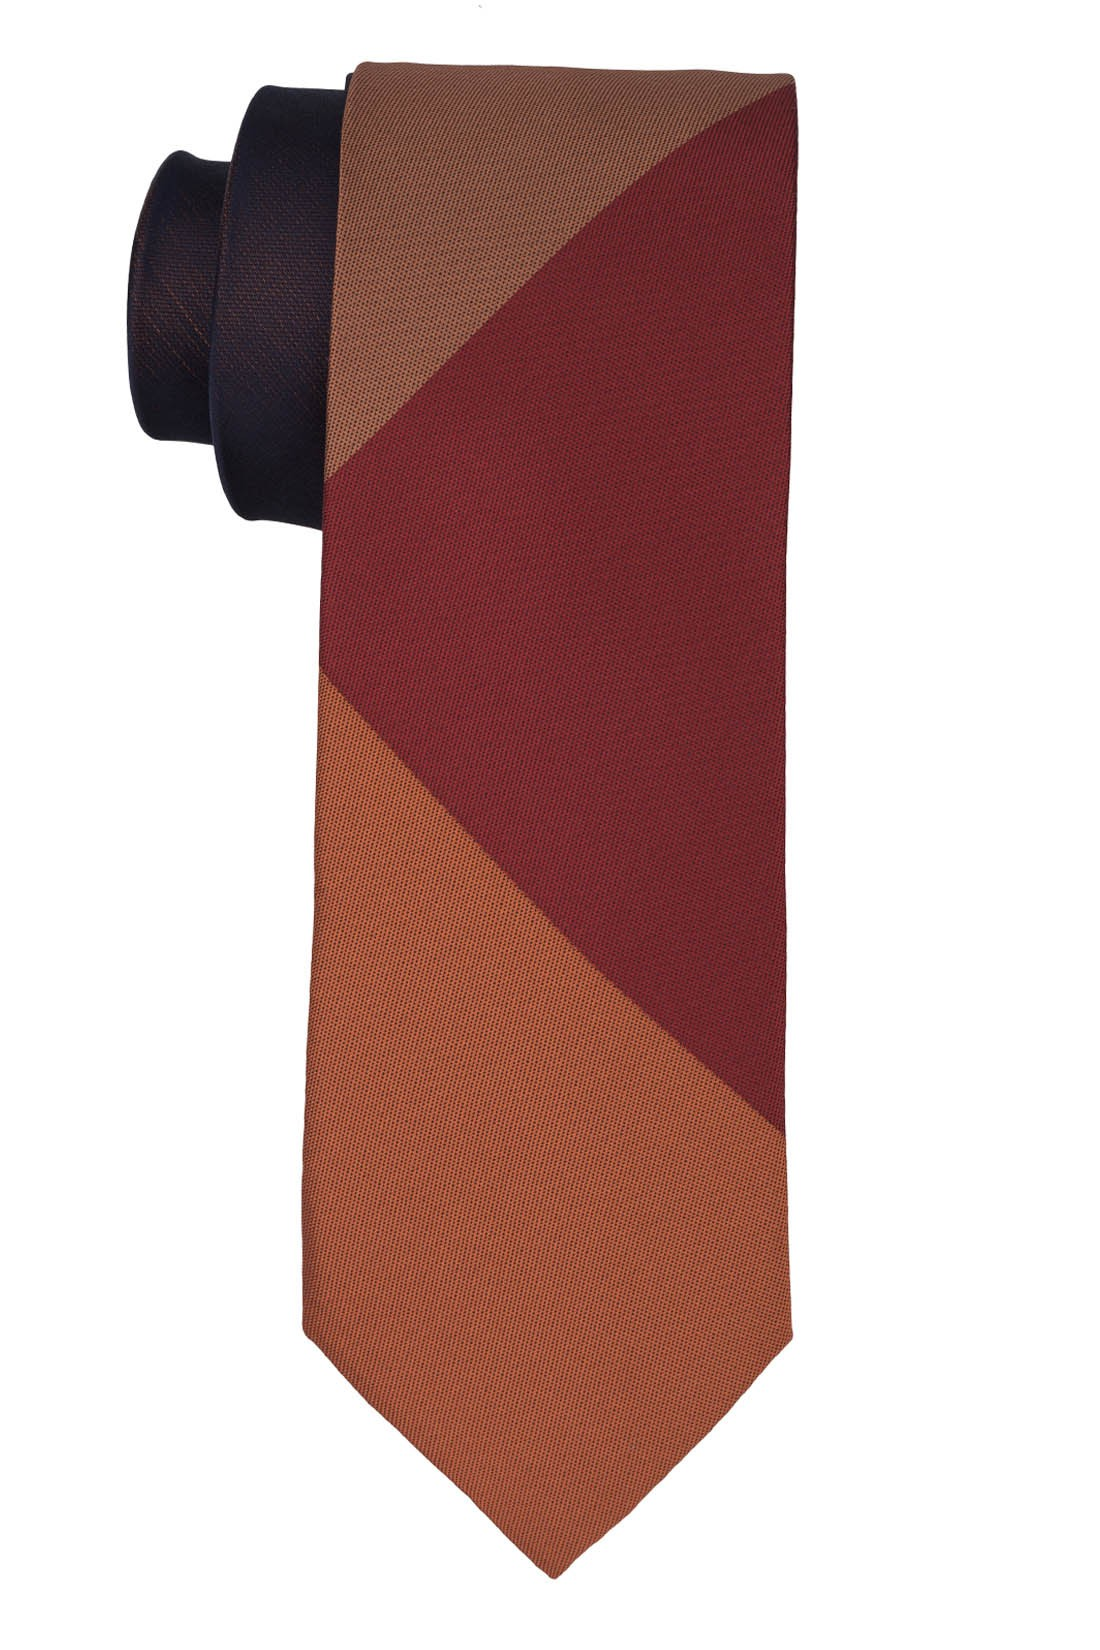 Muticolor Solid Orange And Maroon Silk Necktie